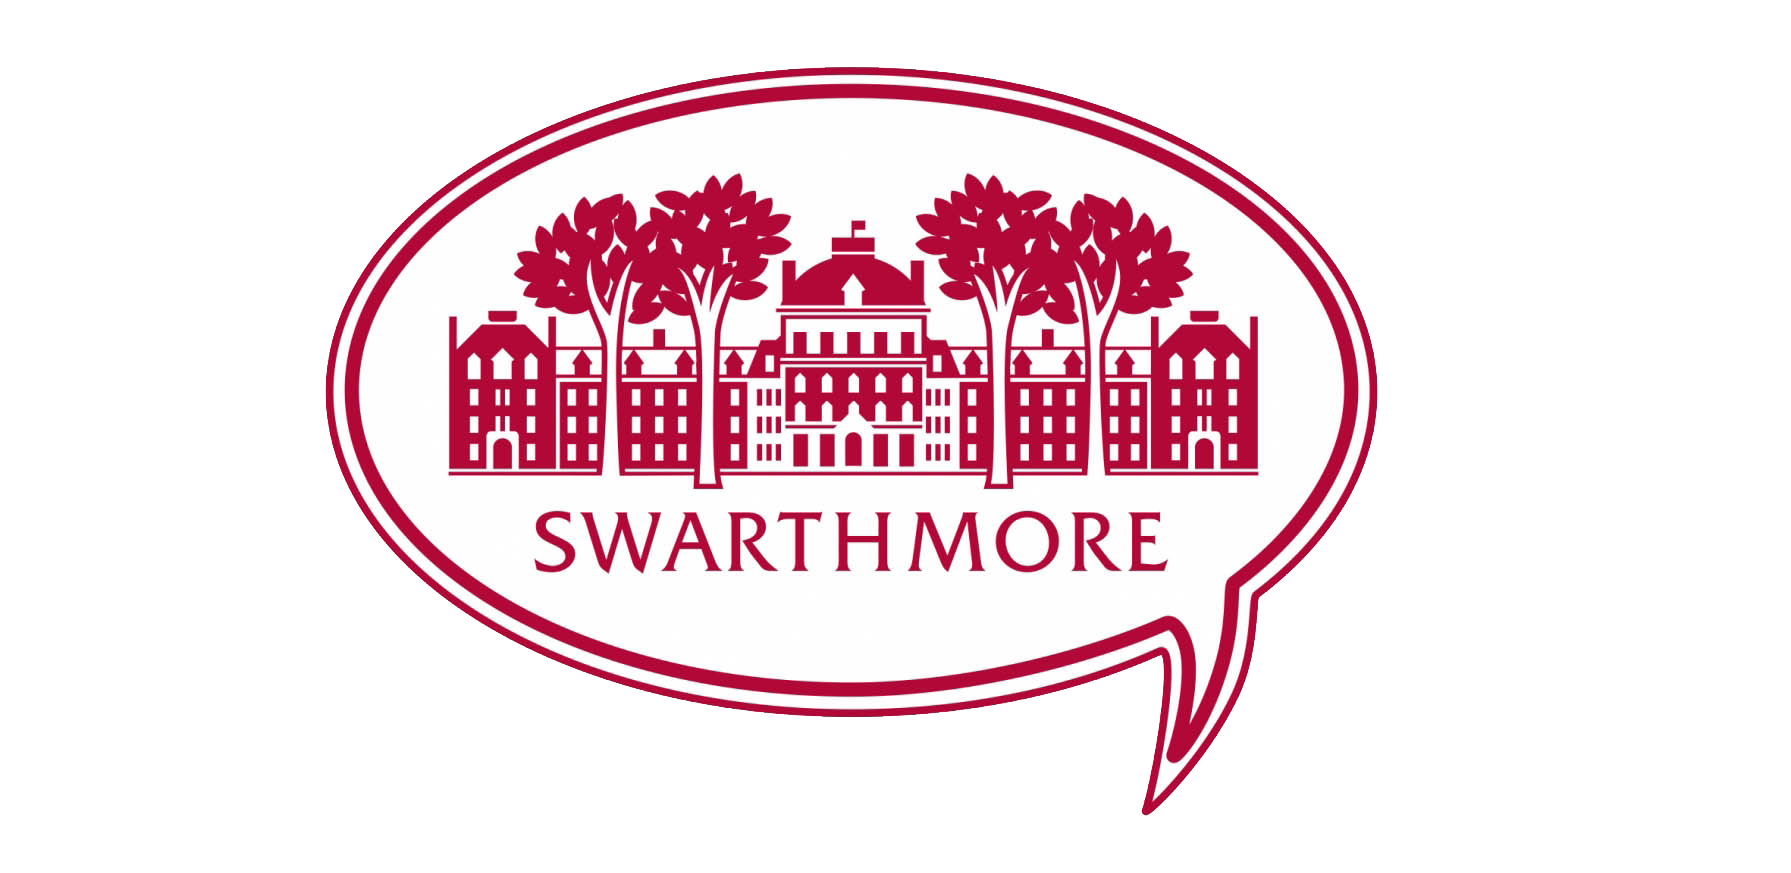 Living, Working, and Living - A Swarthmore College Self-Study